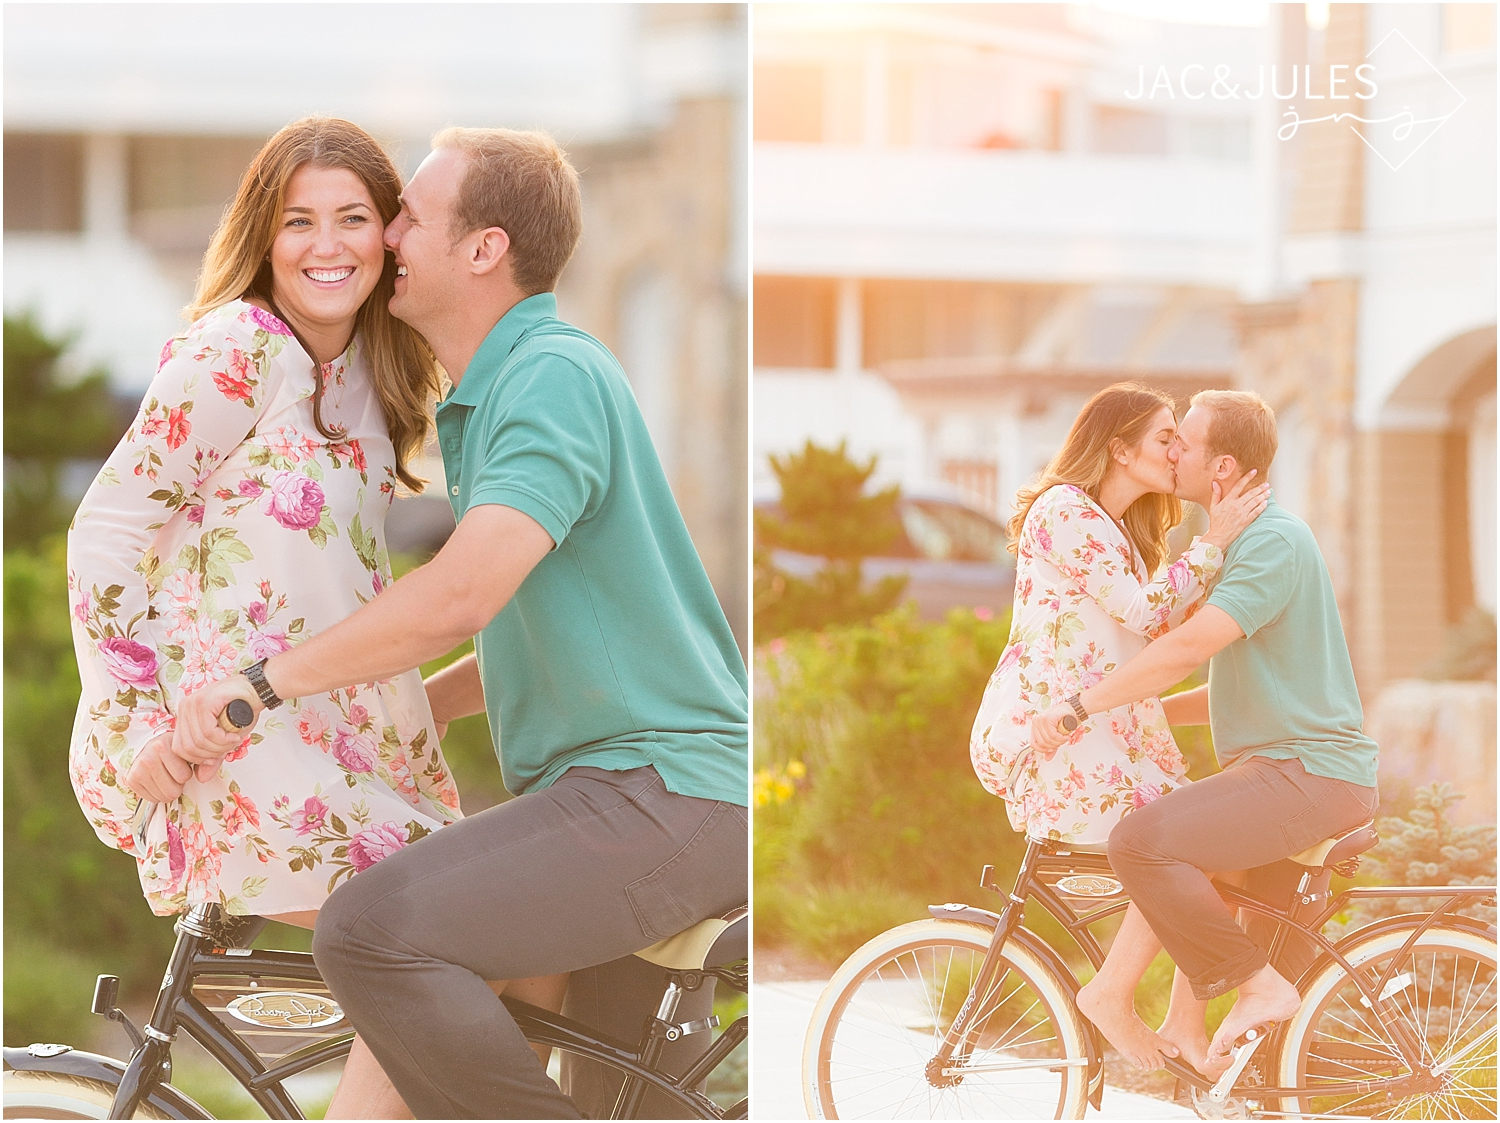 what-to-wear-engagement-bike-photo.jpg